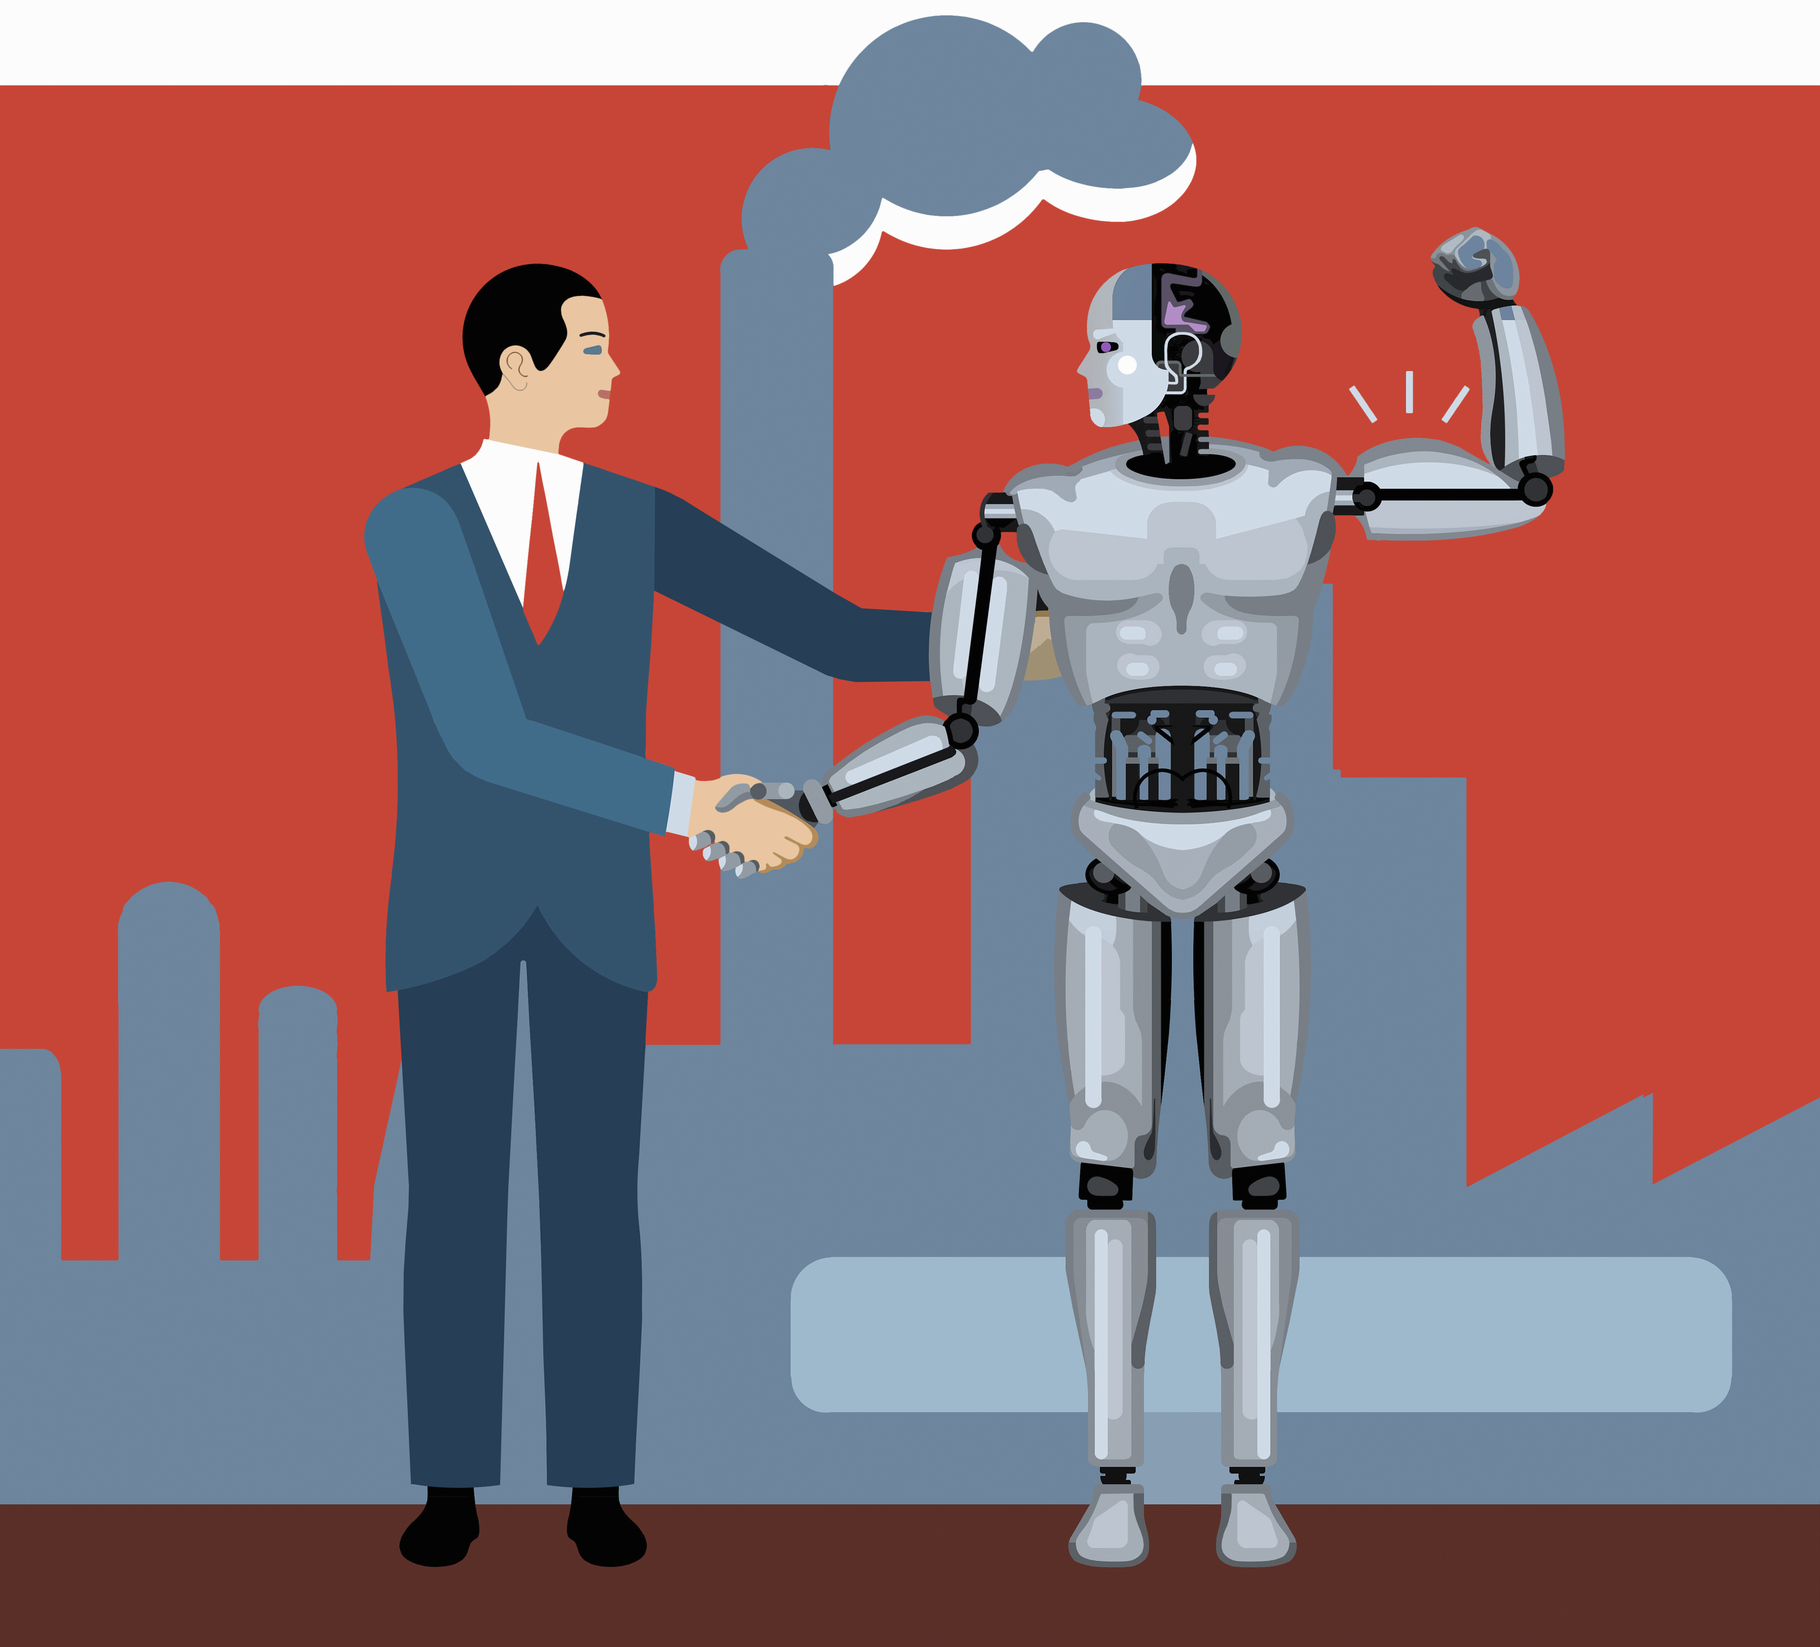 Illustration of human shaking hands with a robot